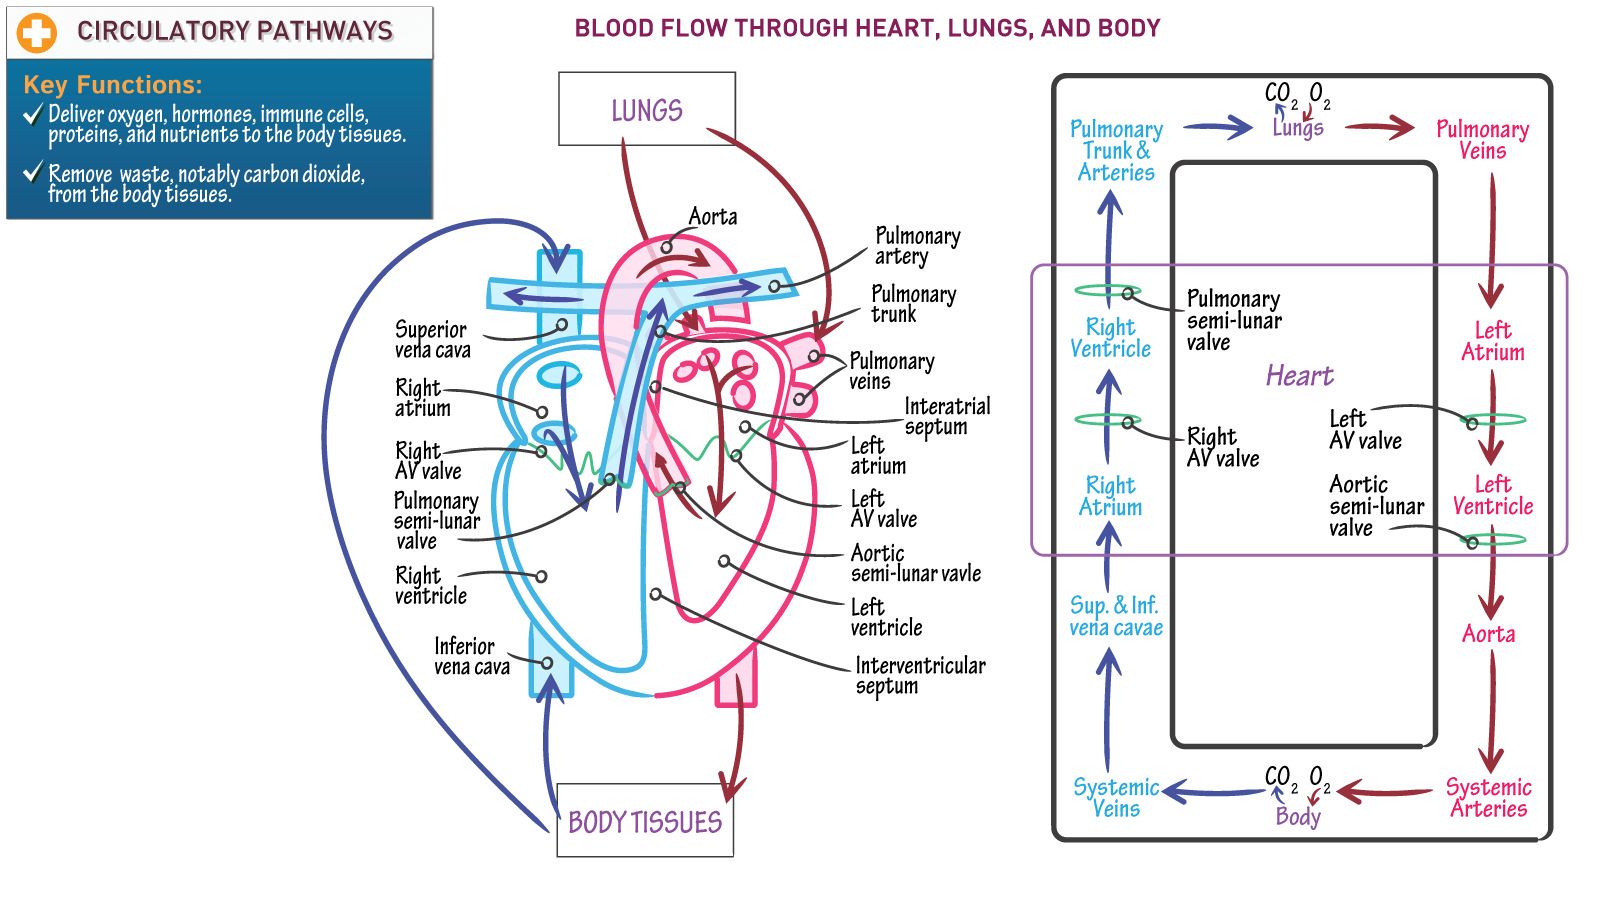 Anatomy physiology fundamentals blood flow through heart lungs blood flow through heart lungs and body ccuart Image collections